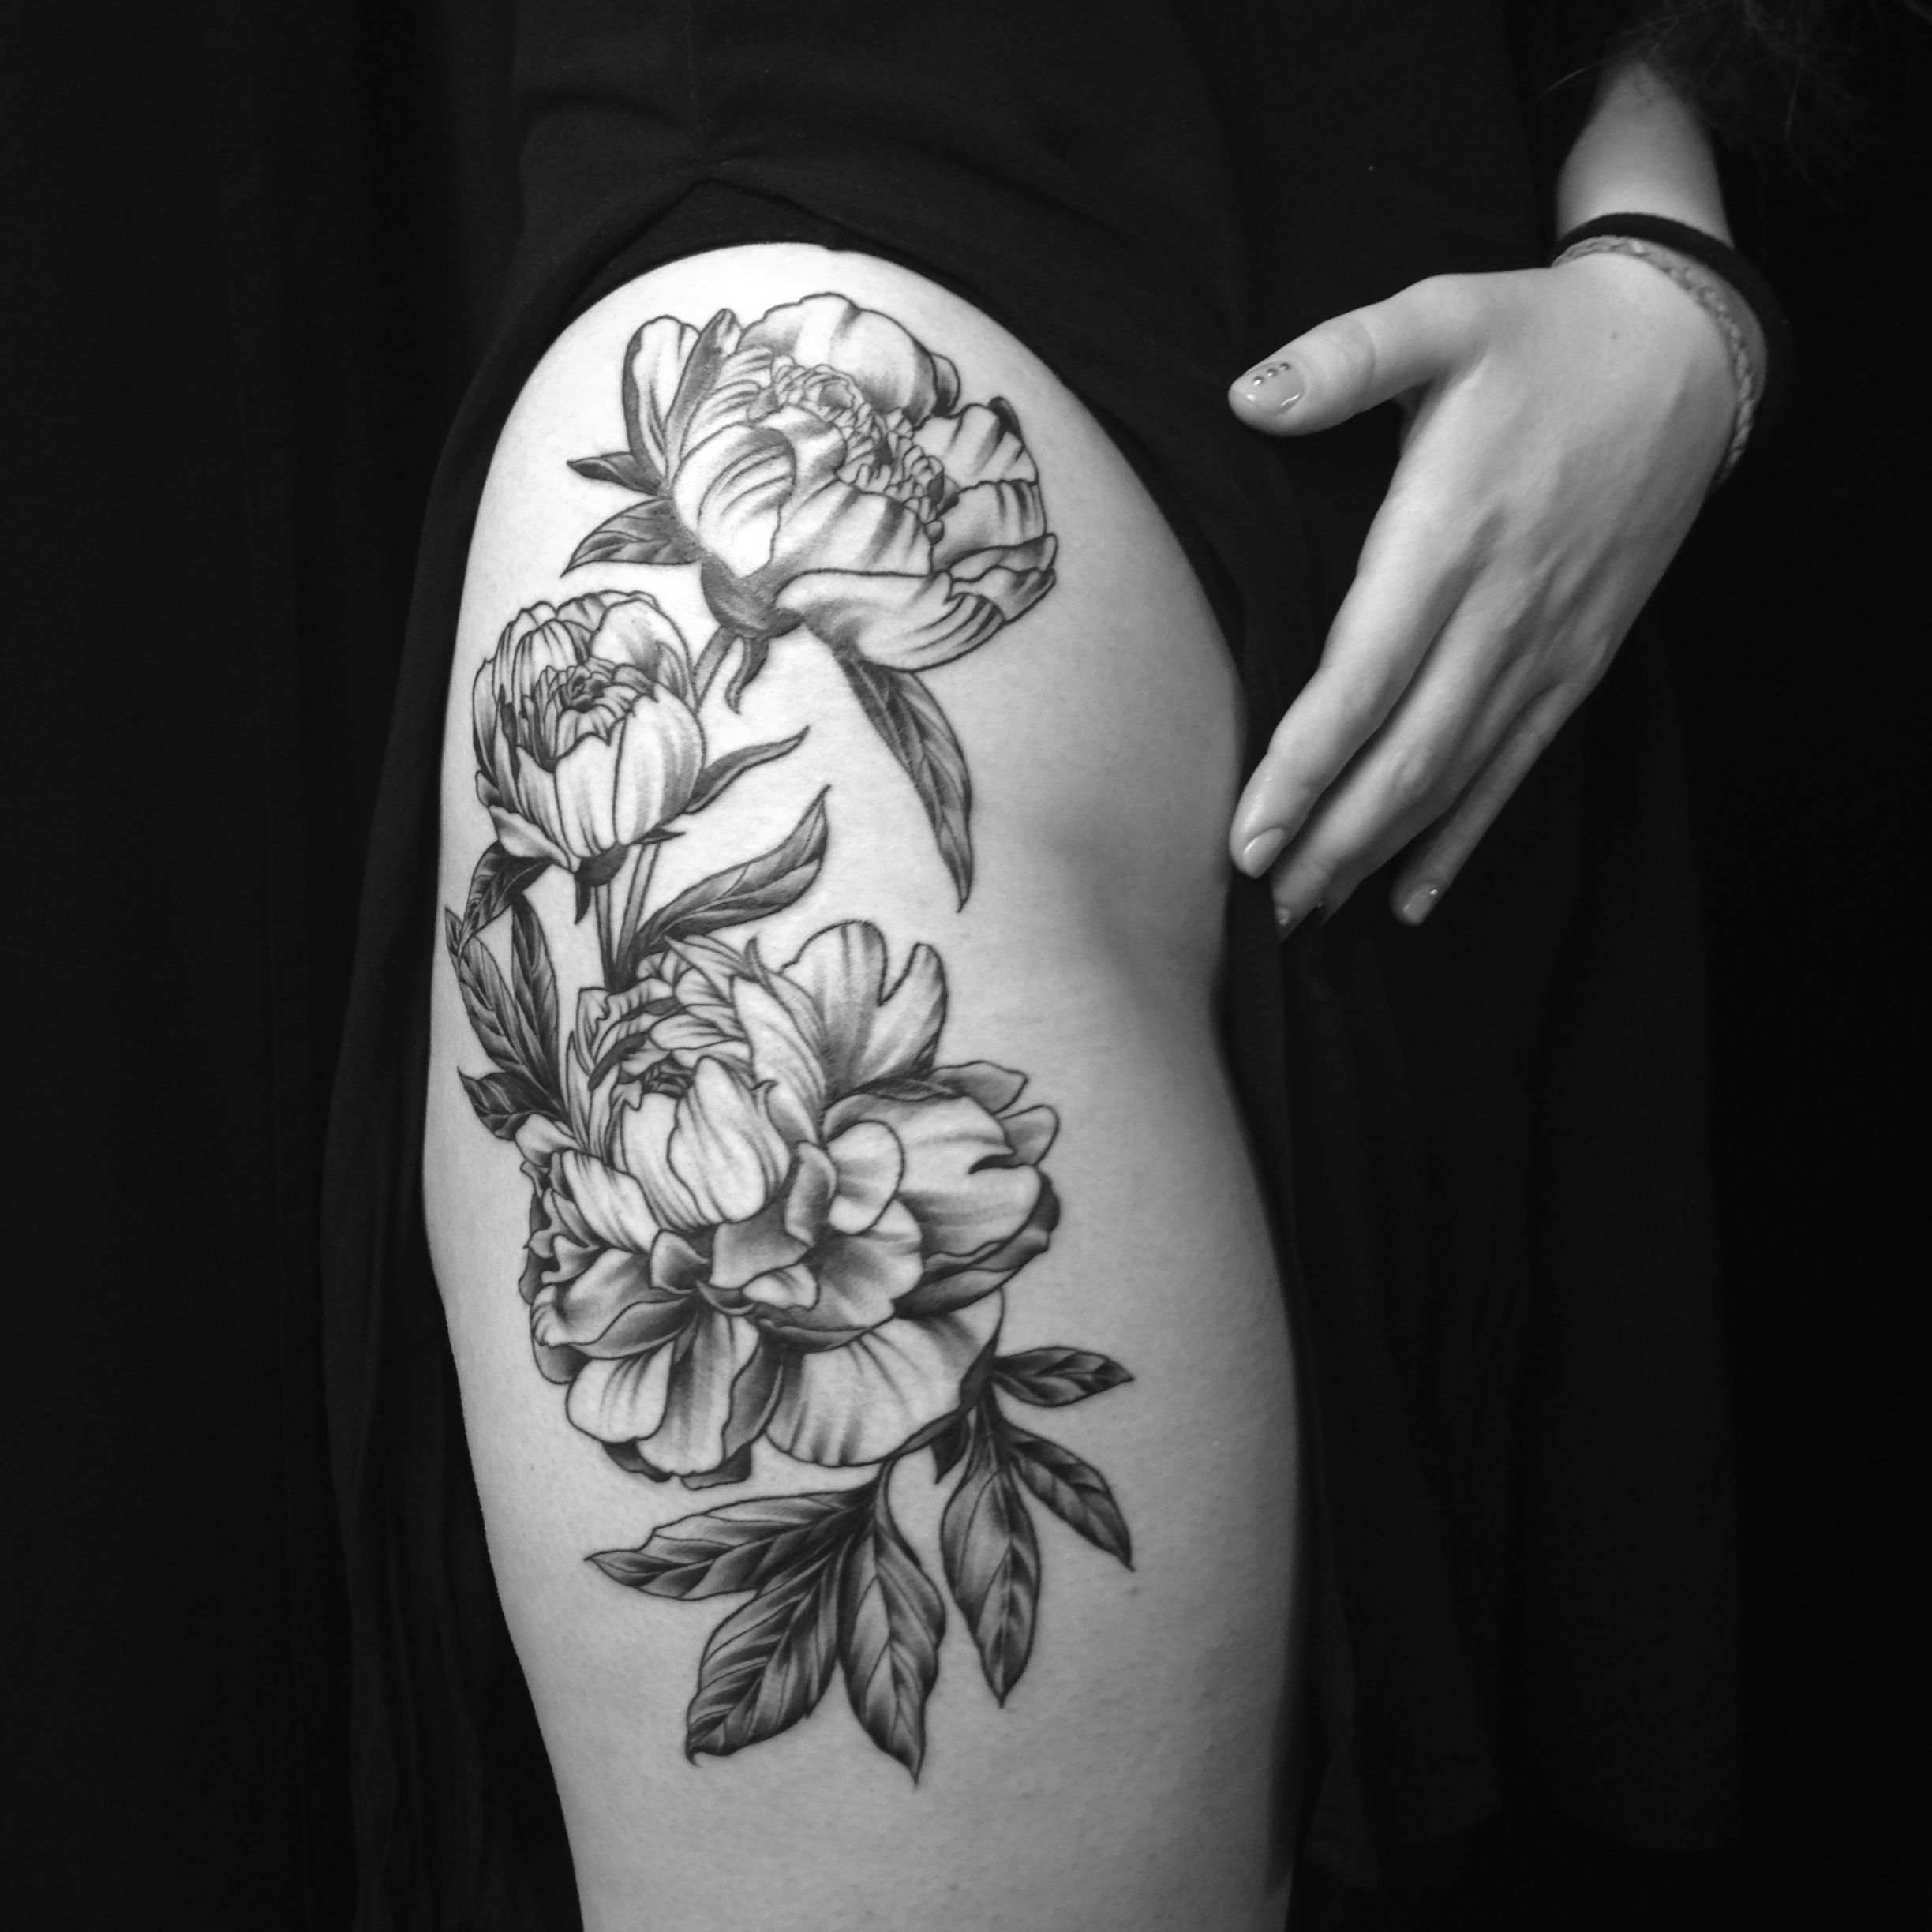 Tattoo Berlin Prenzlauer Berg Graphic Peony Tattoo By Blanka Selfmade Tattoo Berlin Tattoo